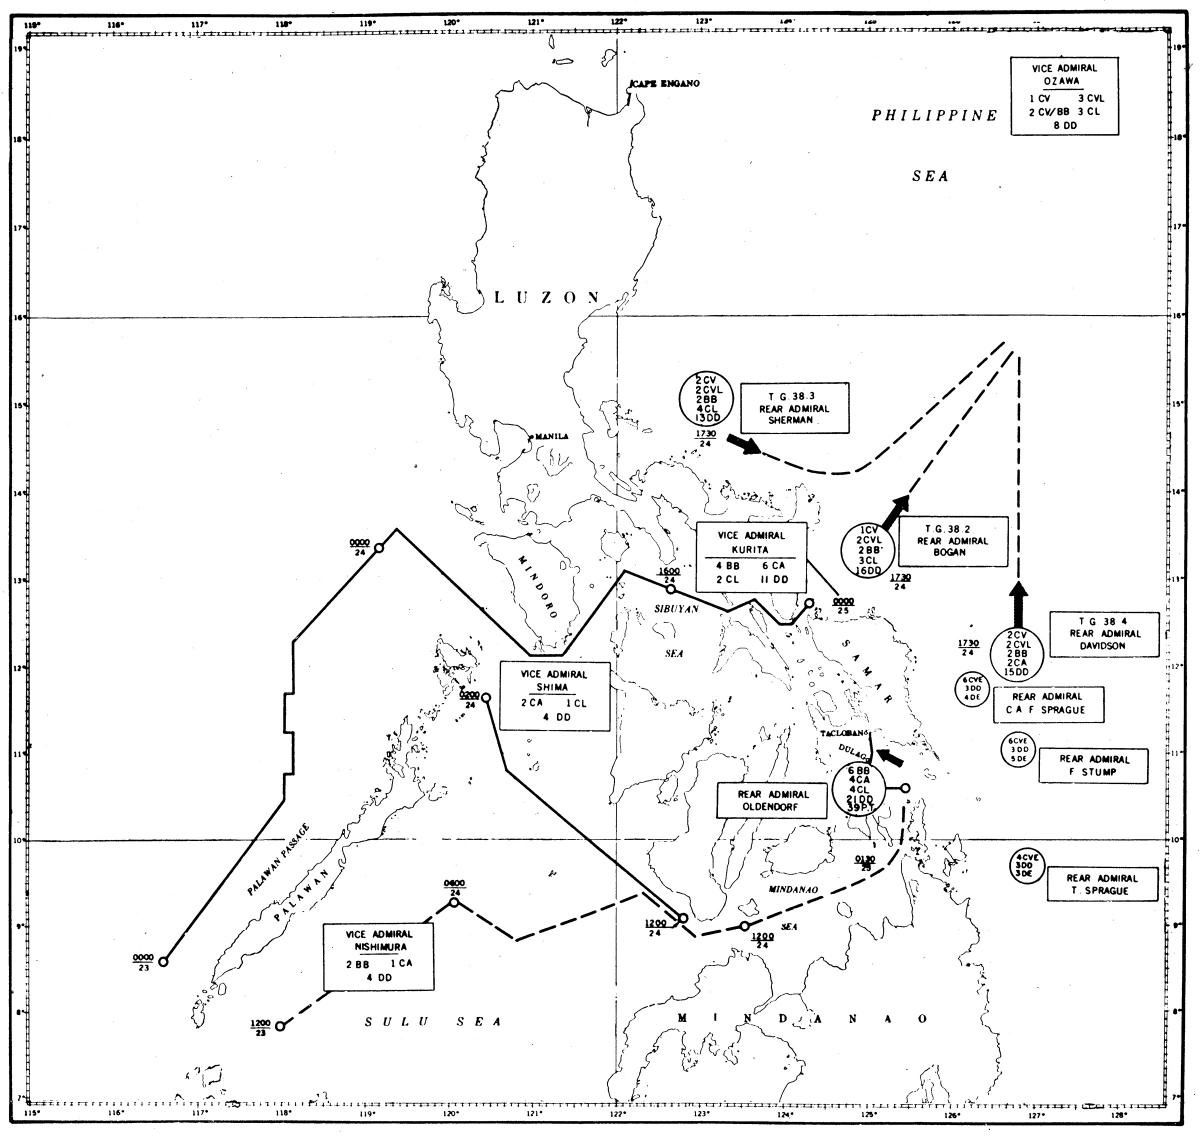 Map of the Battle of Leyte Gulf